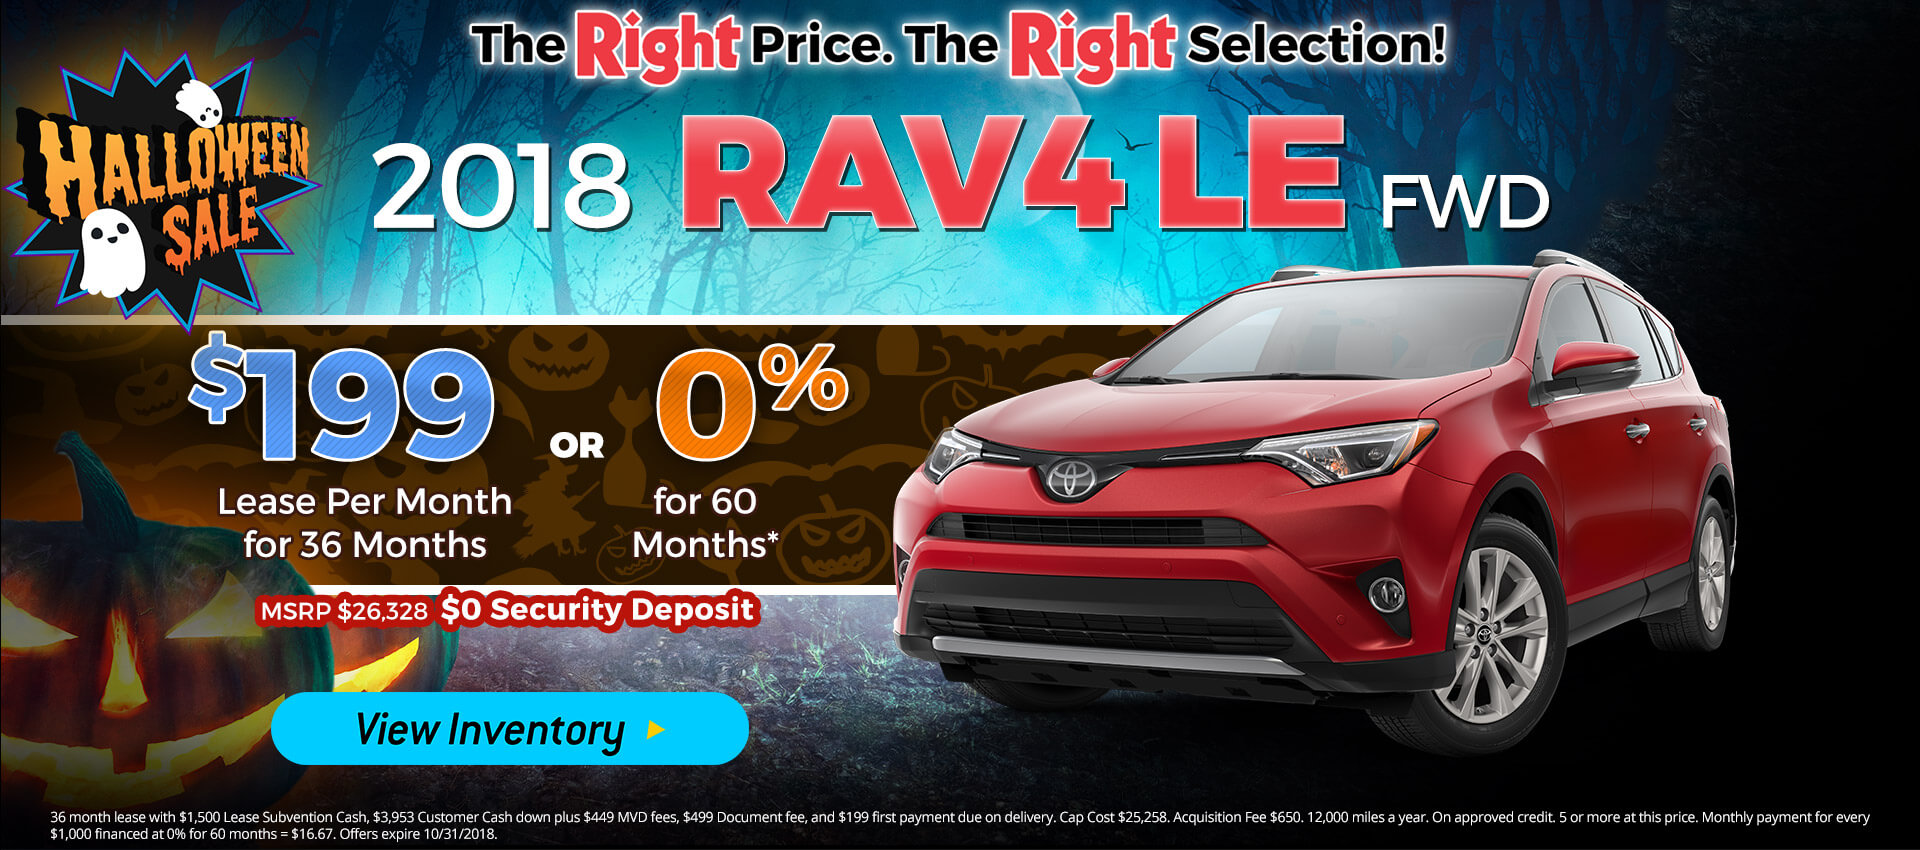 Right Toyota Serving Scottsdale And Phoenix AZ - Fountain hills car show 2018